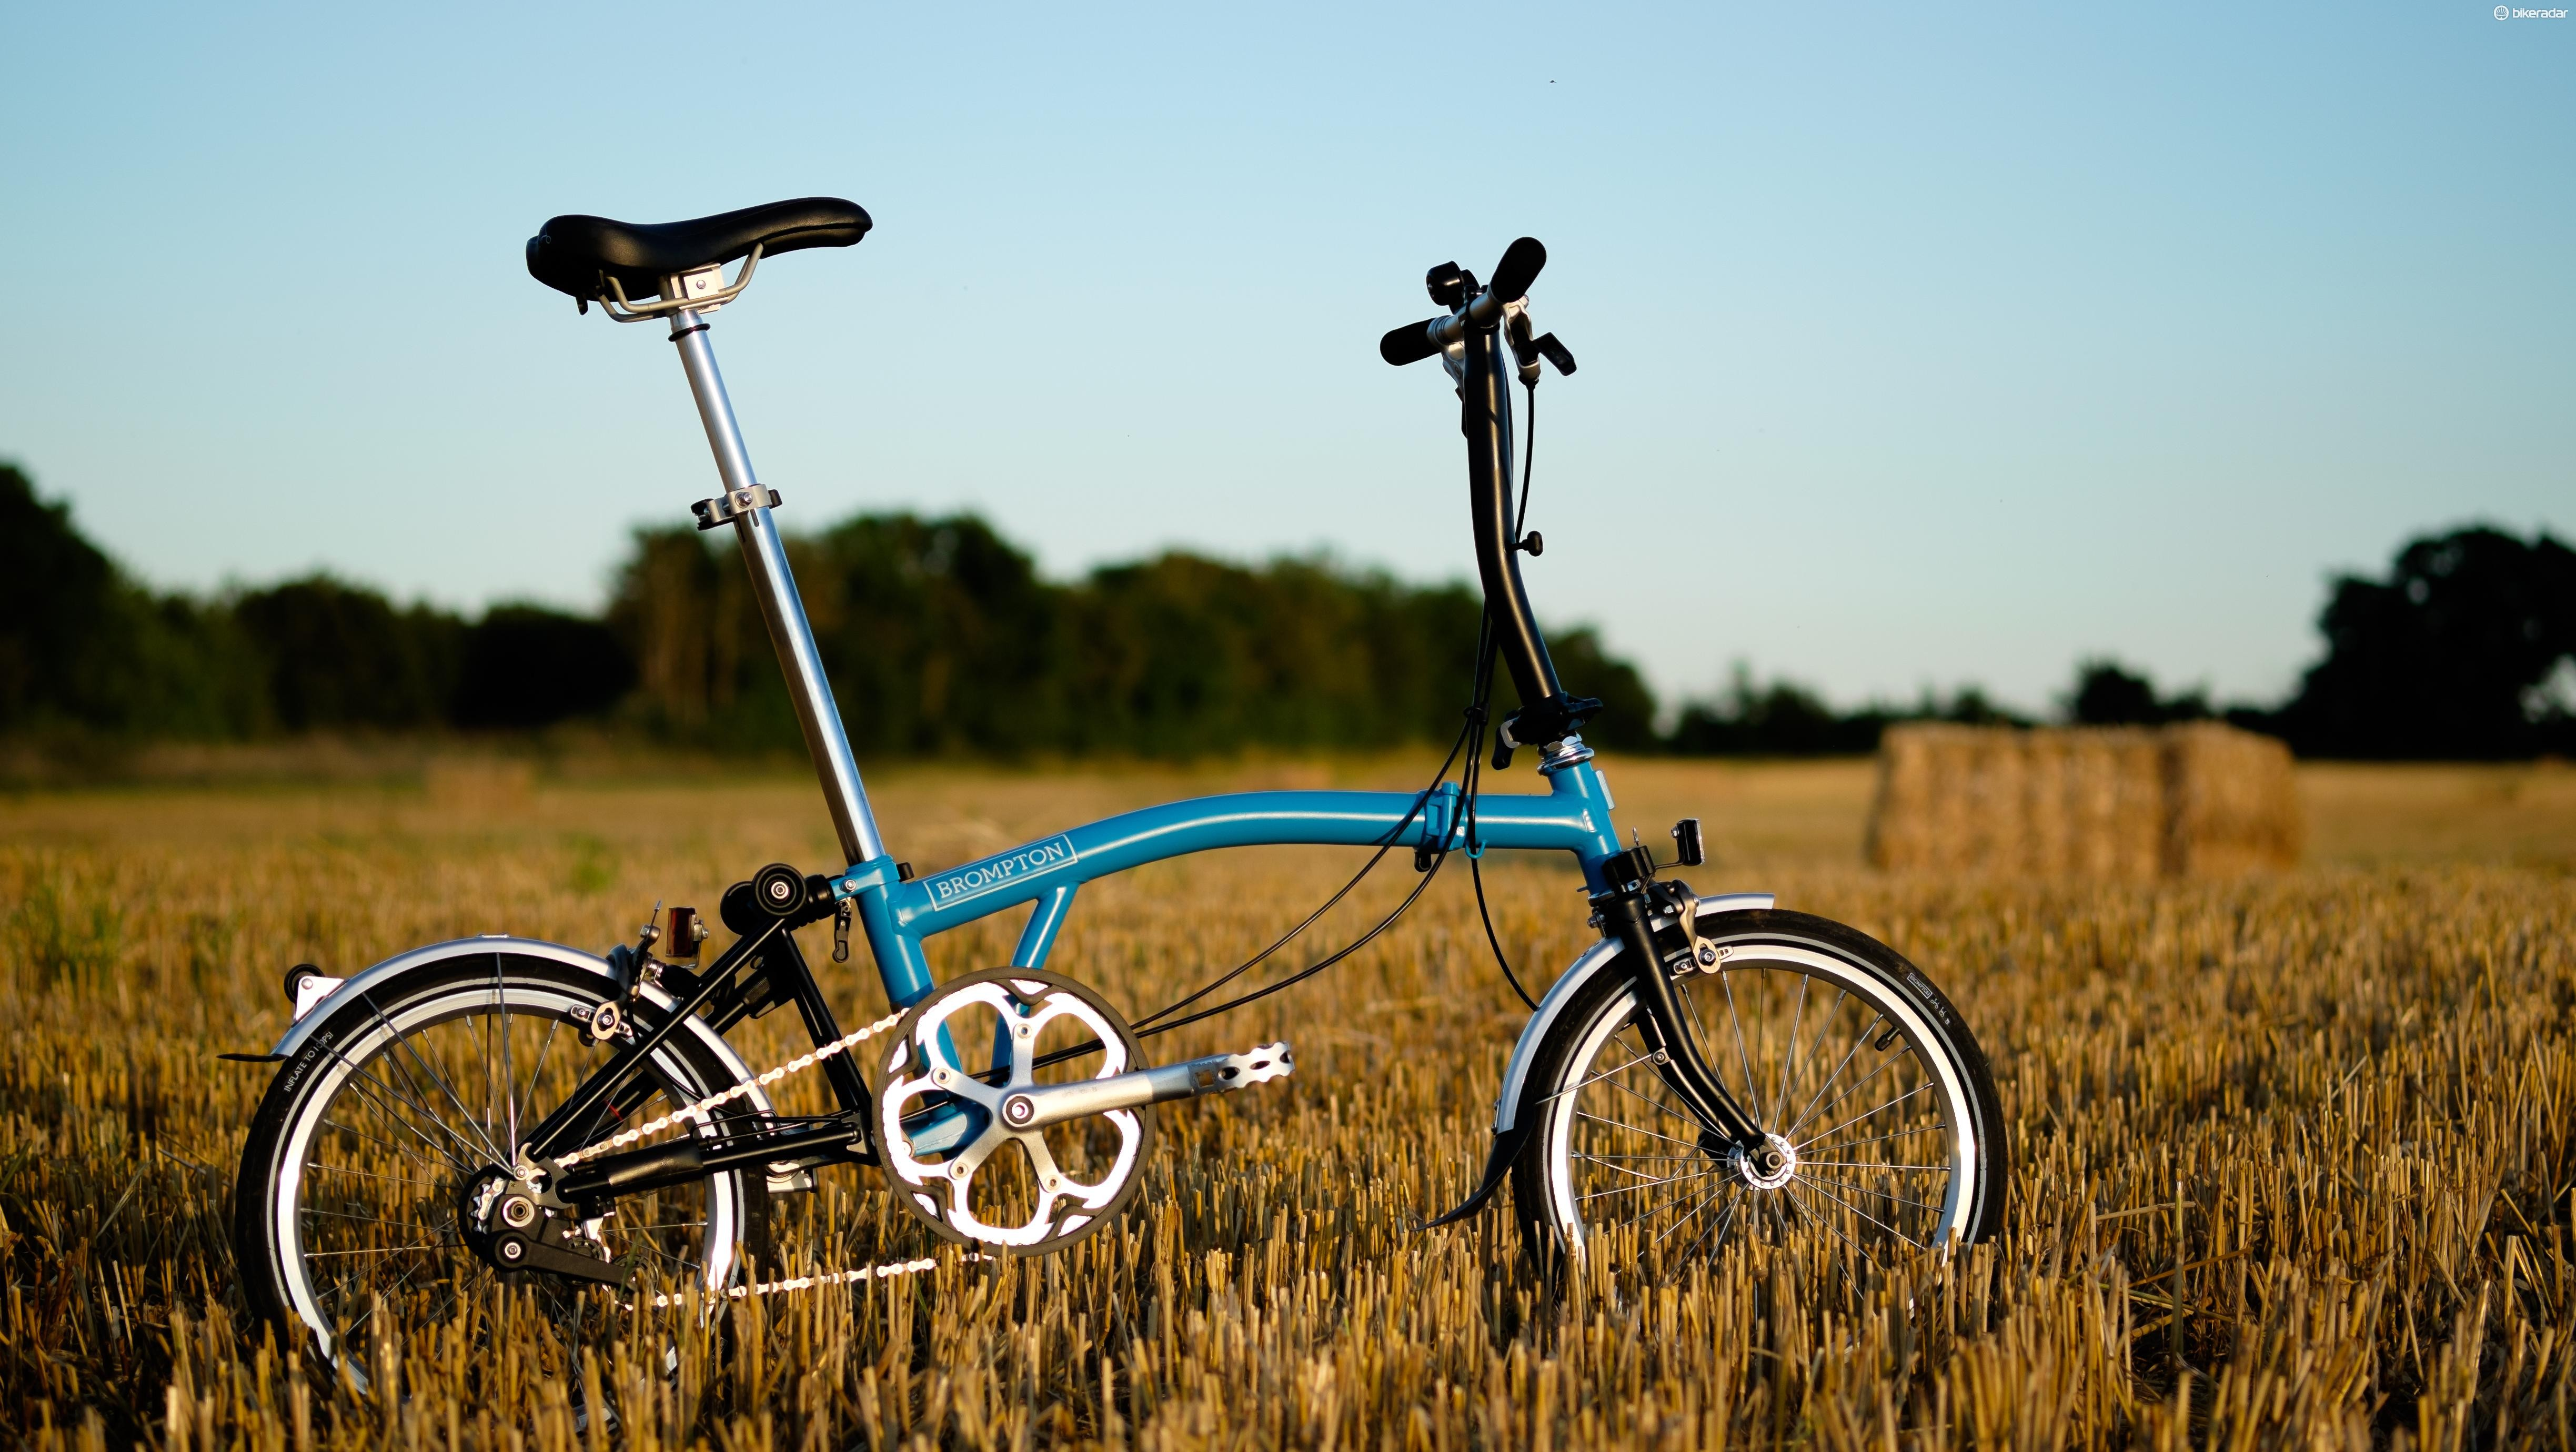 James May has been riding a Brompton since before it was trendy to do so